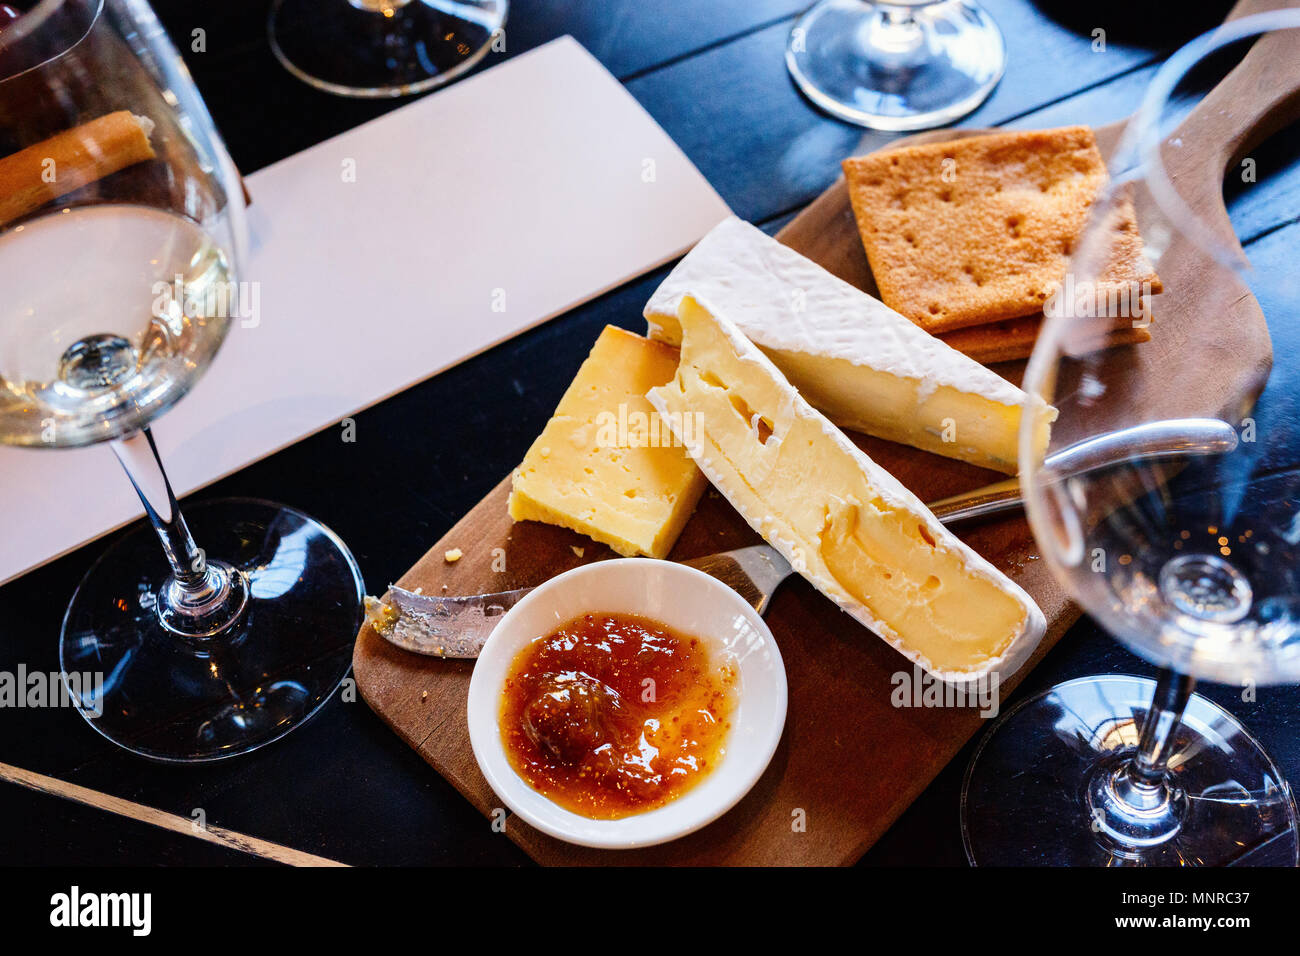 Wine and cheese tasting in South Africa estate in Western Cape wine-growing region - Stock Image